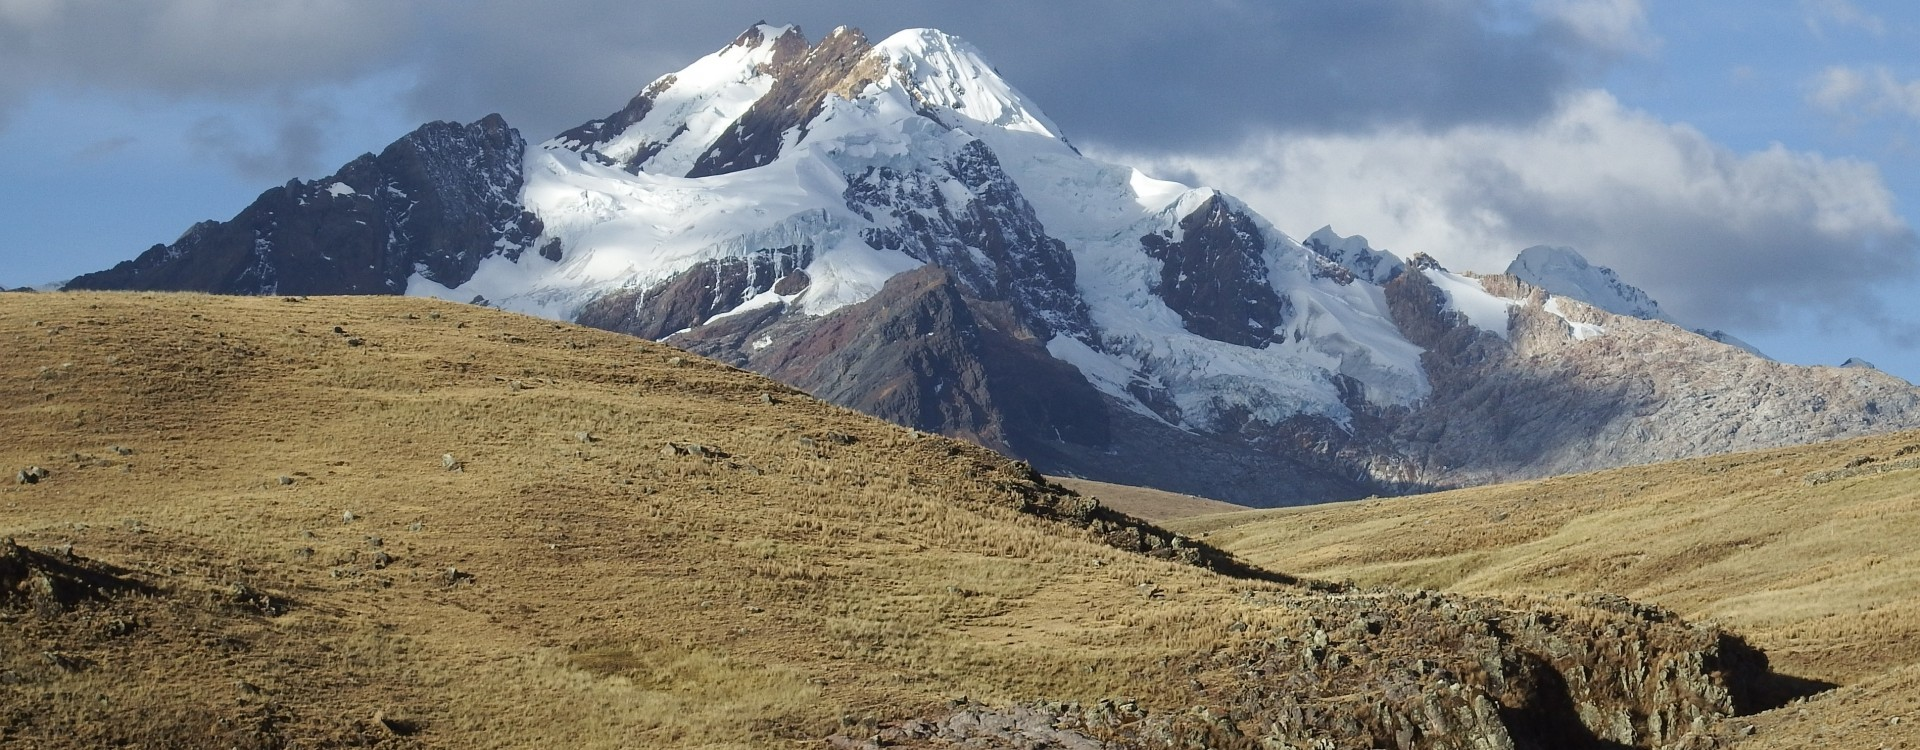 Approaching the mountains, Cordillera Blanca